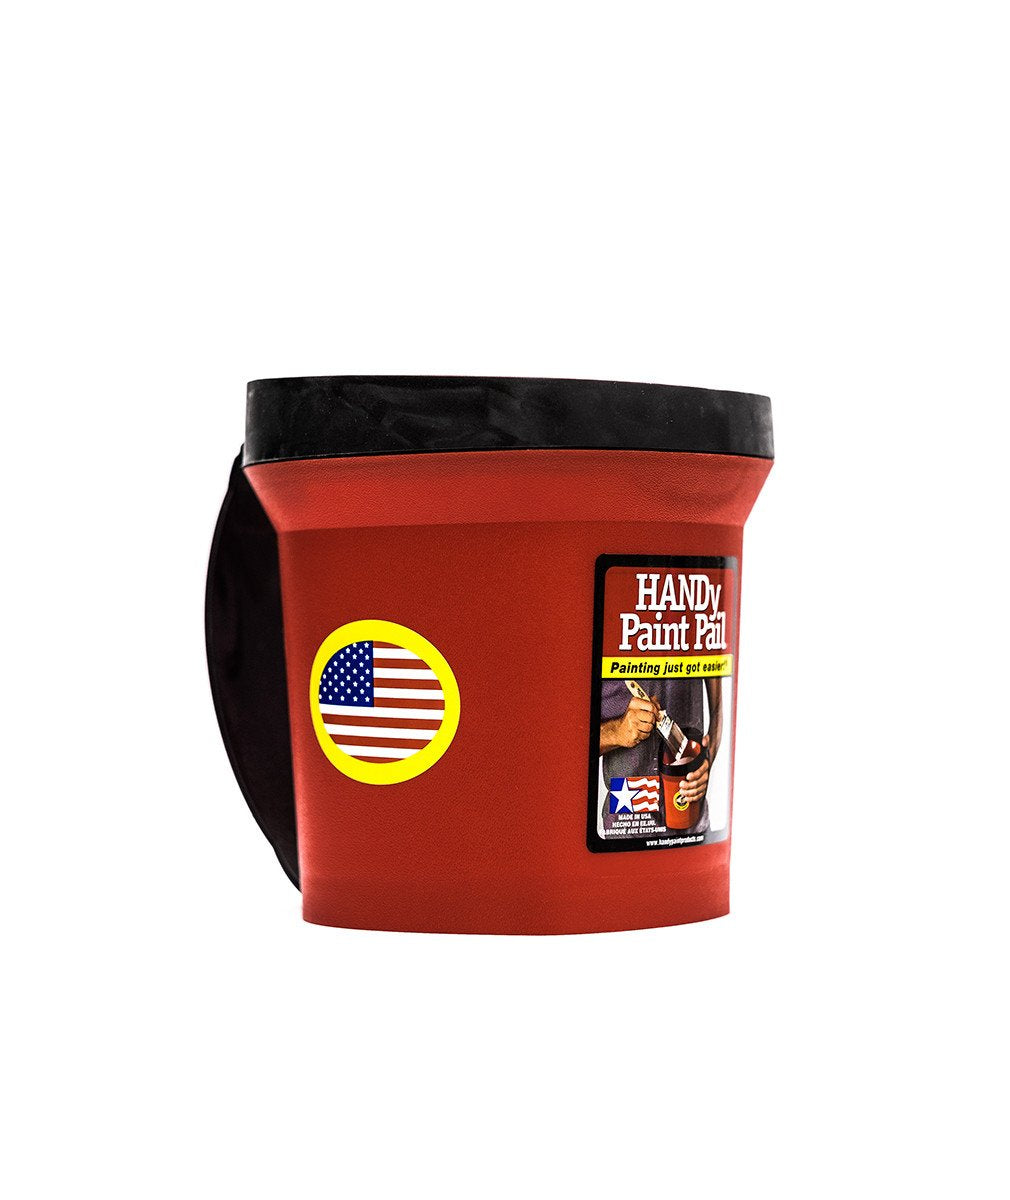 Handy paint pail, available at Wallauer's in NY.